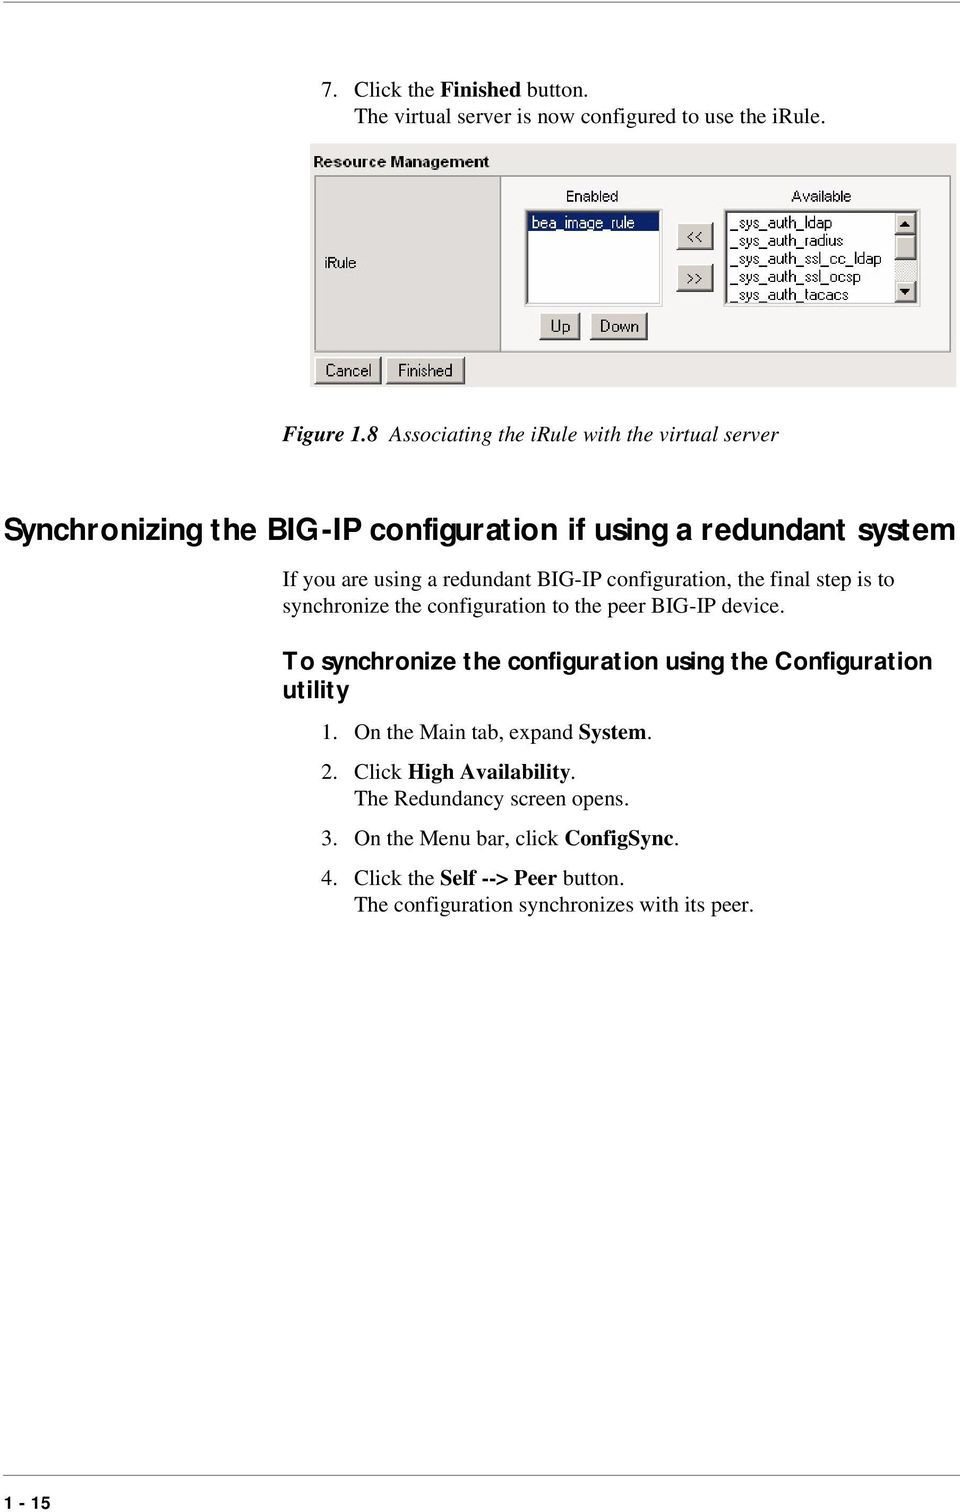 configuration, the final step is to synchronize the configuration to the peer BIG-IP device.